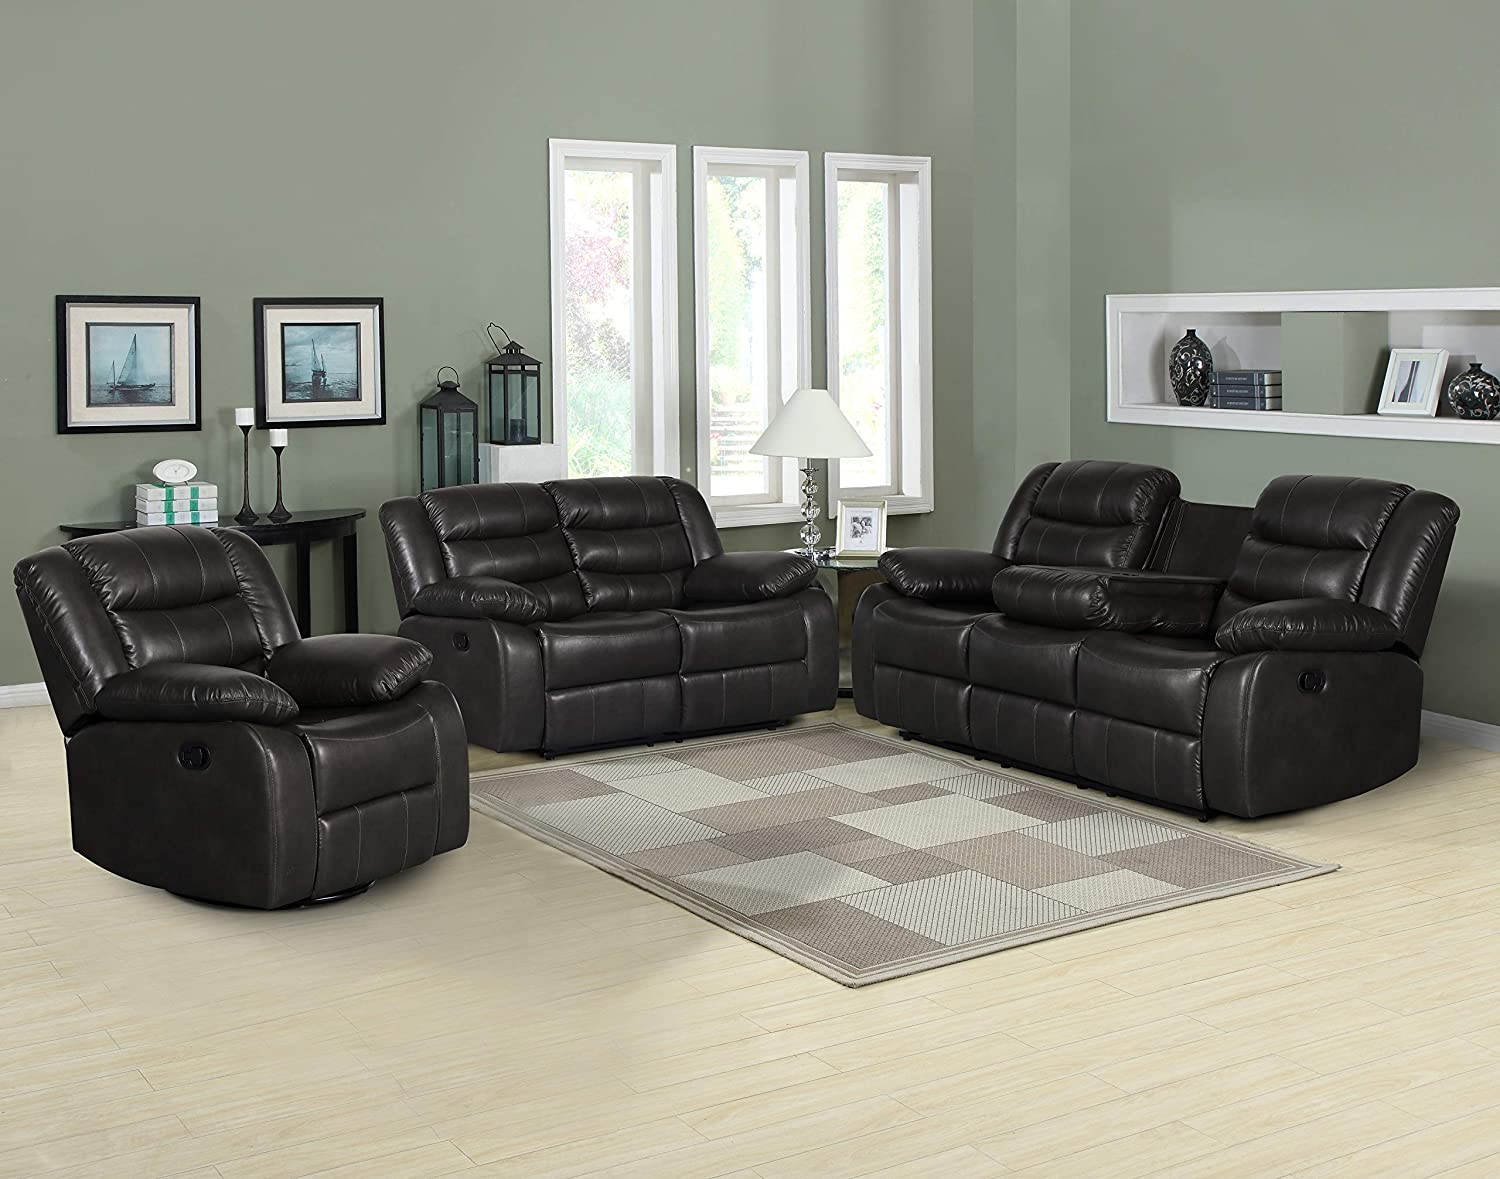 Container Furniture Direct Adeline Mid Century Modern Leatherette Living Room Reclining Chair 35.25 Dark Grey